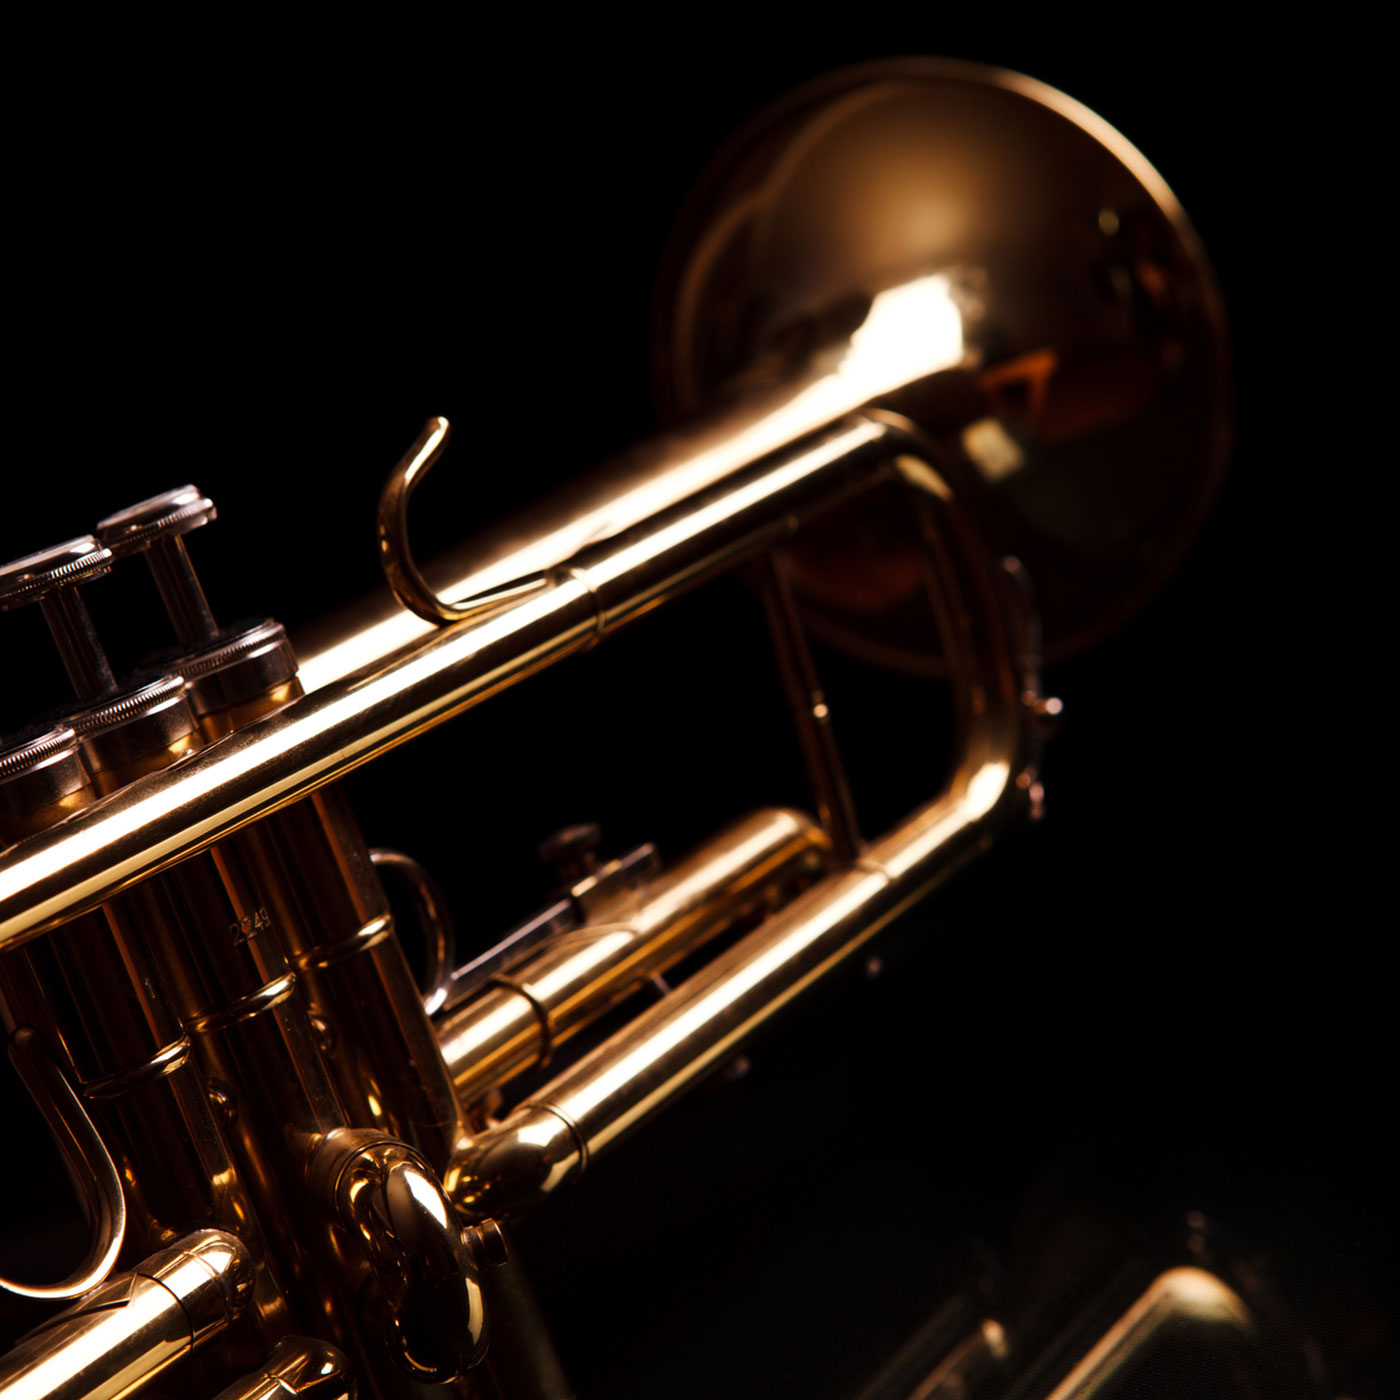 A brass jazz instrument. MNS Attorneys can assist with recording and publishing agreements.